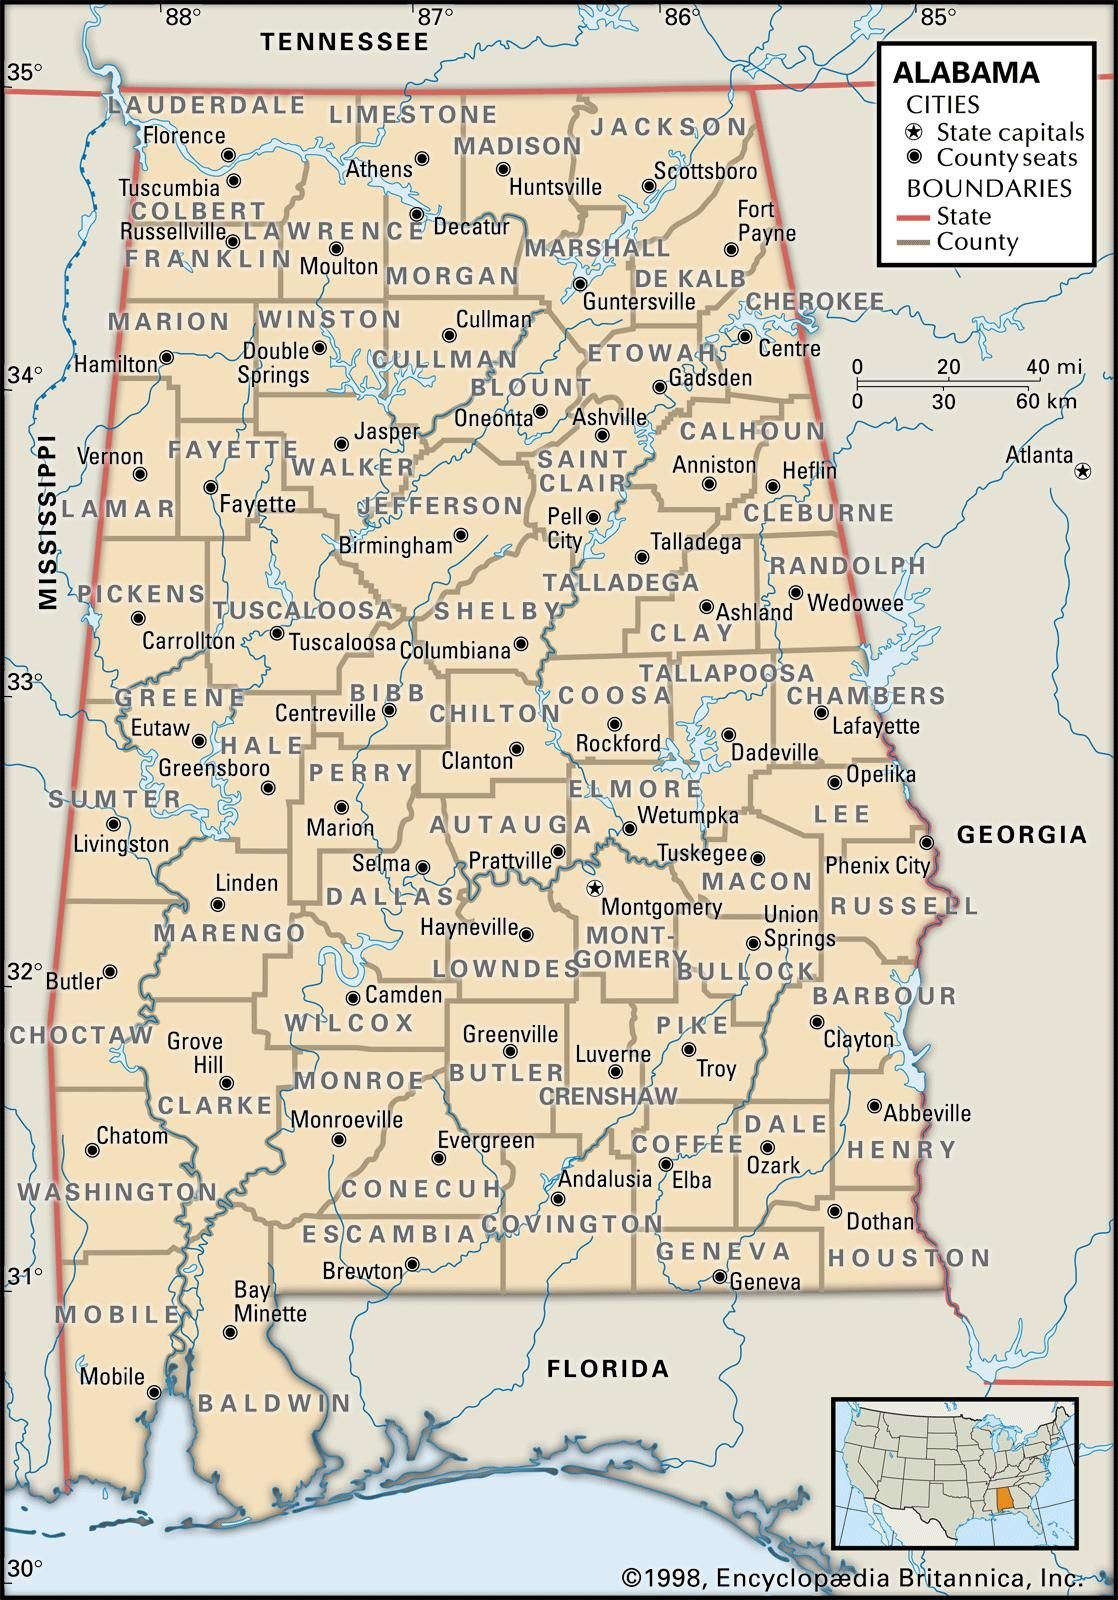 image about Printable Map of Tennessee Counties known as Map of Alabama county restrictions and county seats